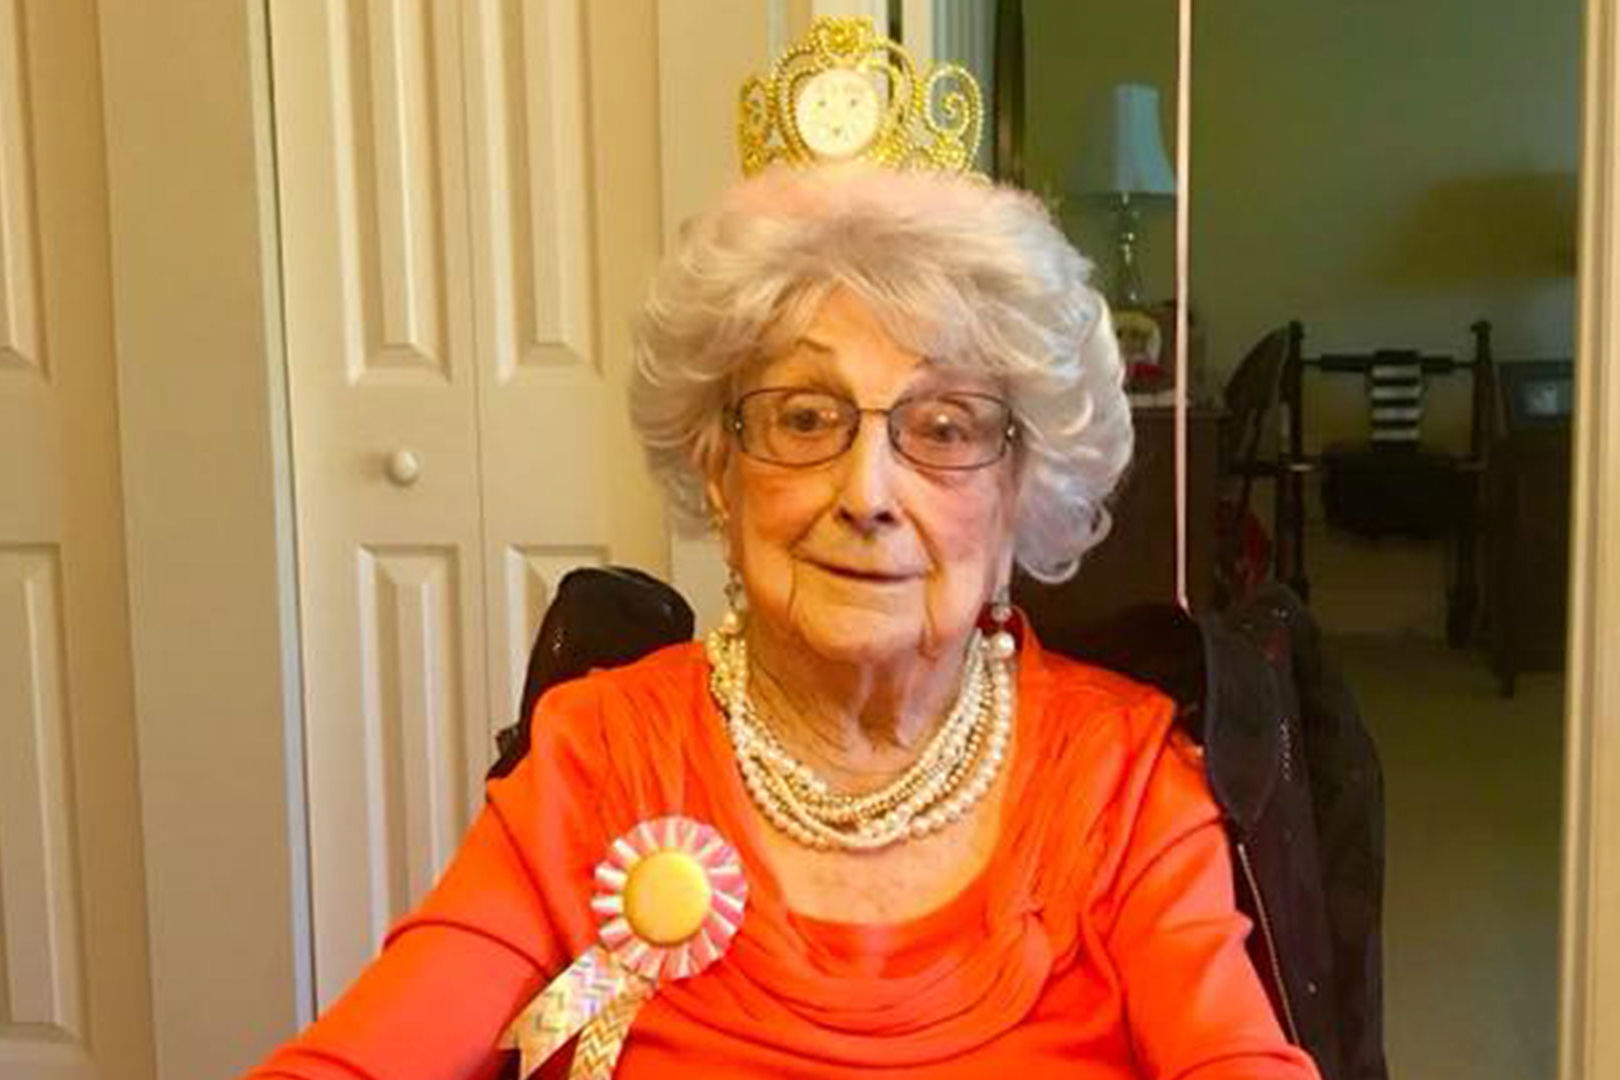 109-Year-Old Charlotte Native Celebrates the End of Each Week with a Glass of Wine